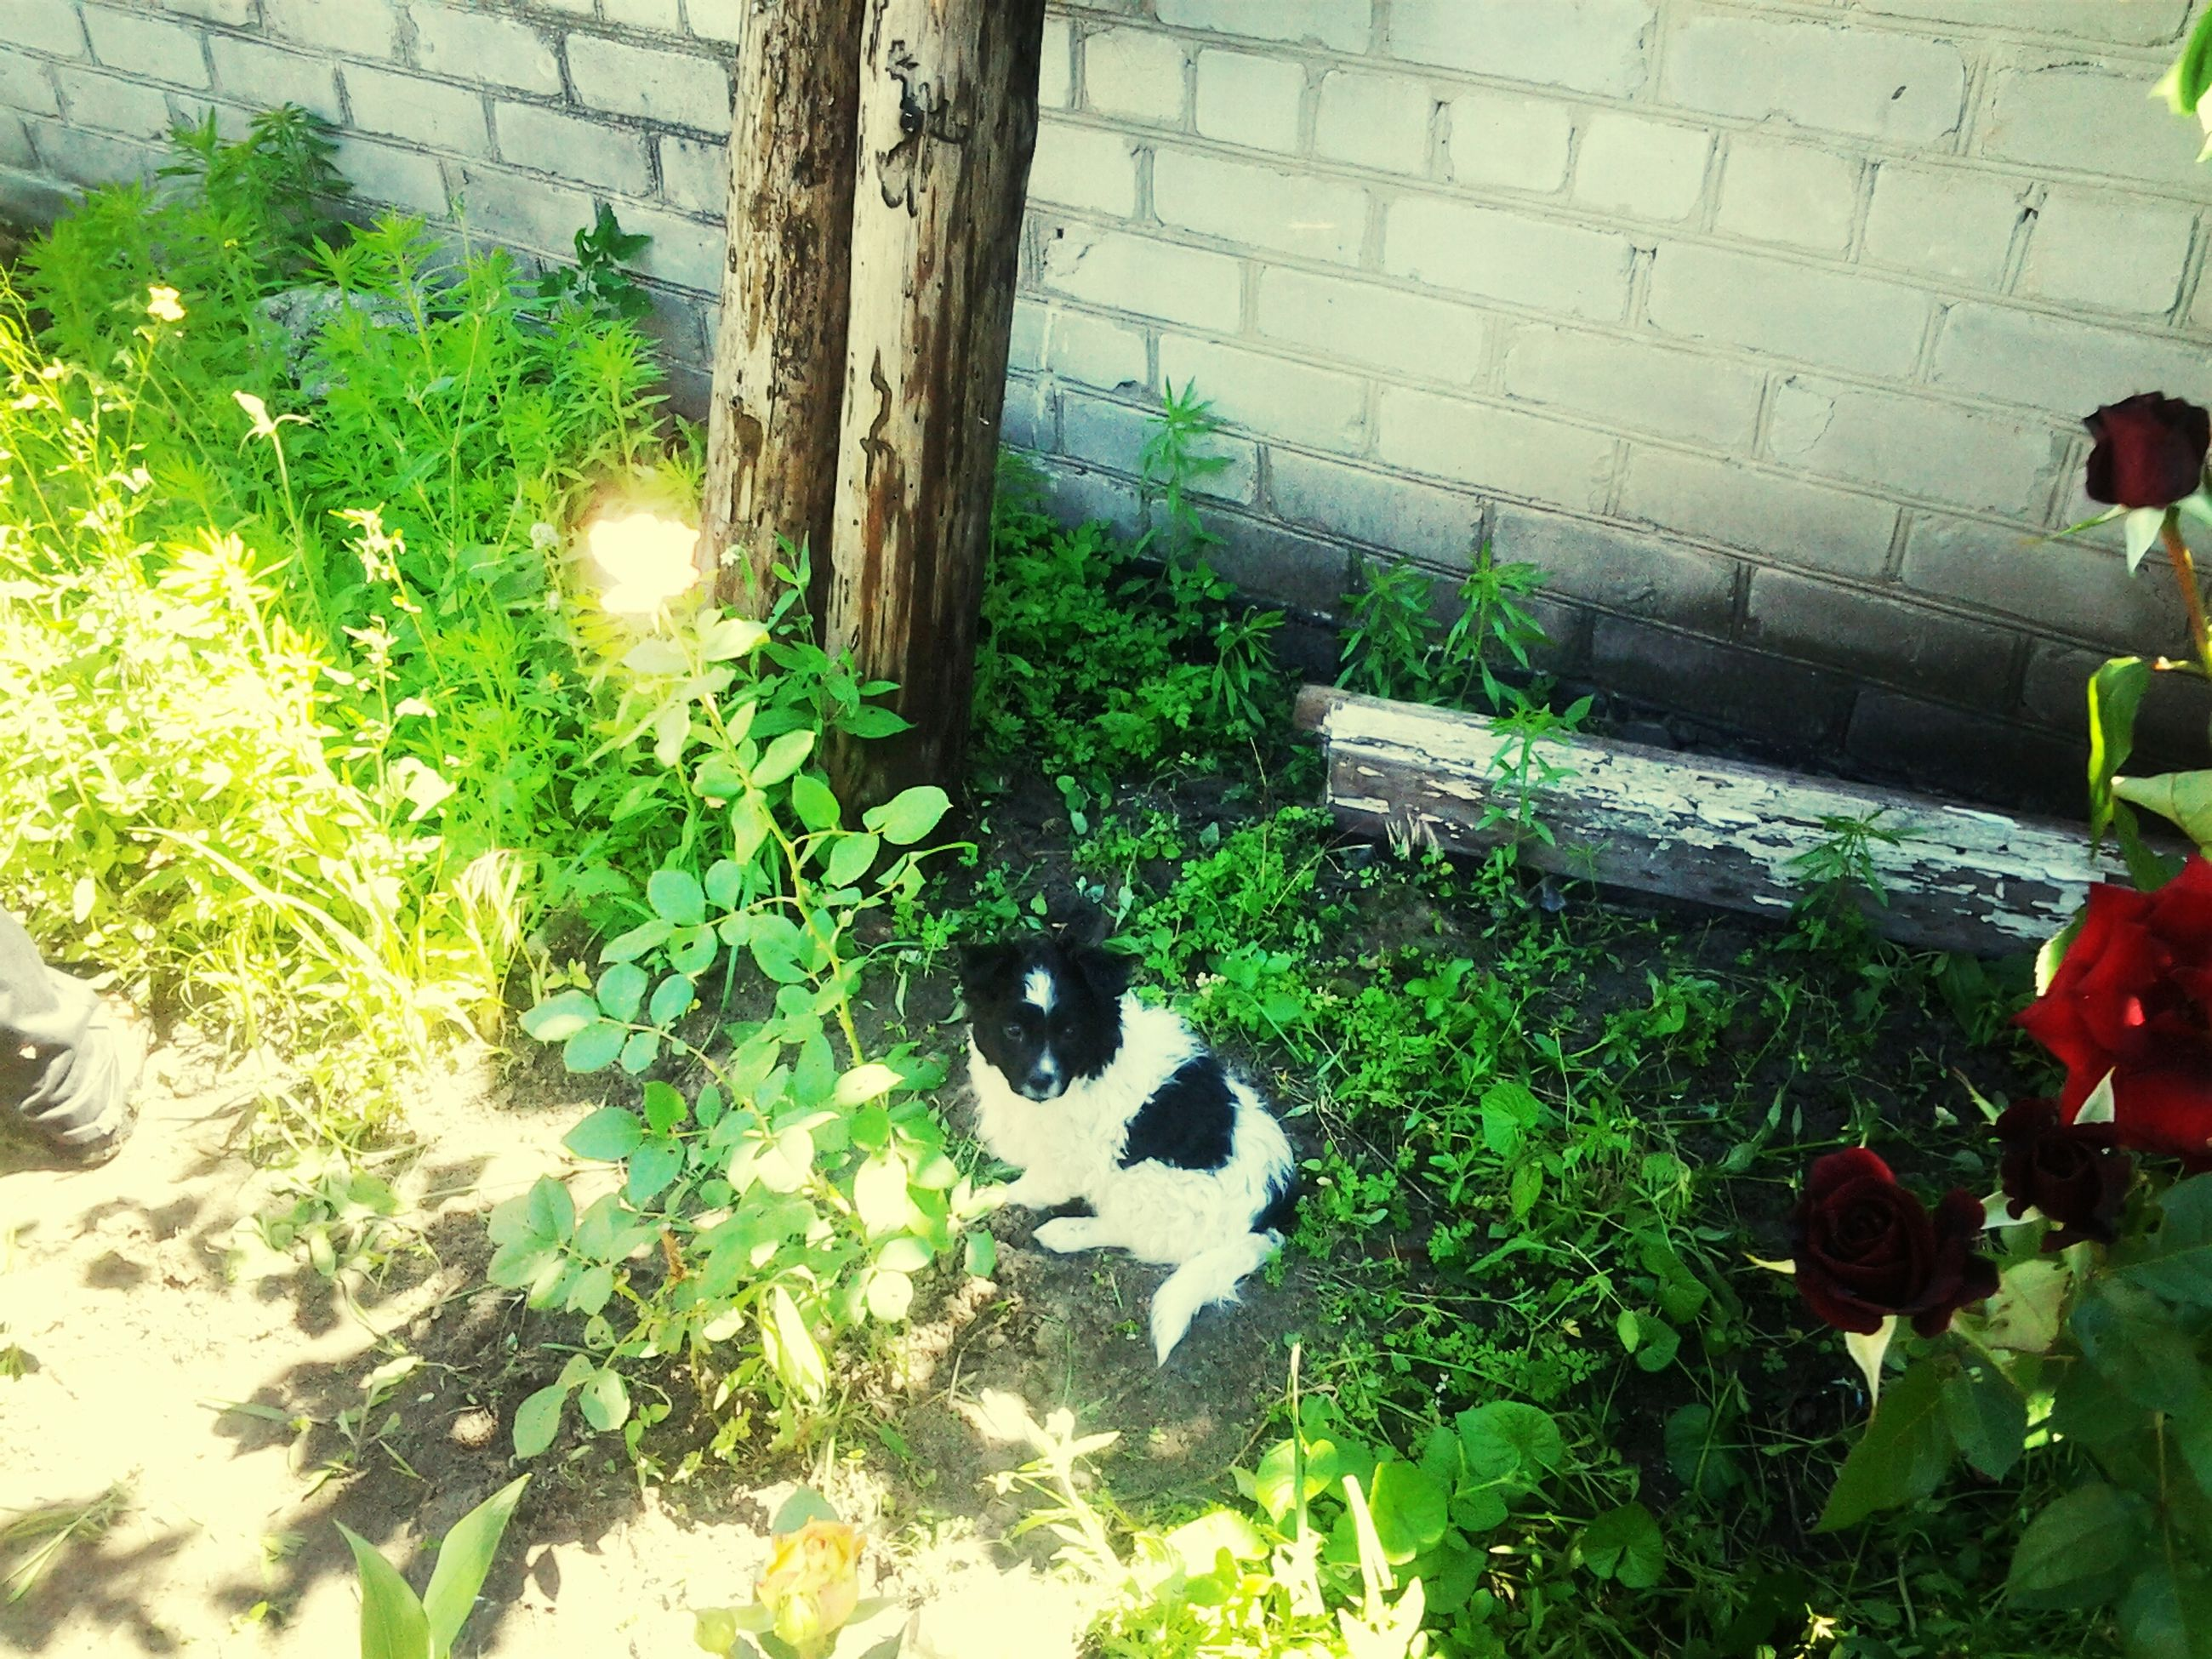 pets, plant, domestic animals, grass, green color, animal themes, one animal, leaf, front or back yard, dog, domestic cat, growth, cat, lawn, mammal, outdoors, high angle view, day, potted plant, sunlight